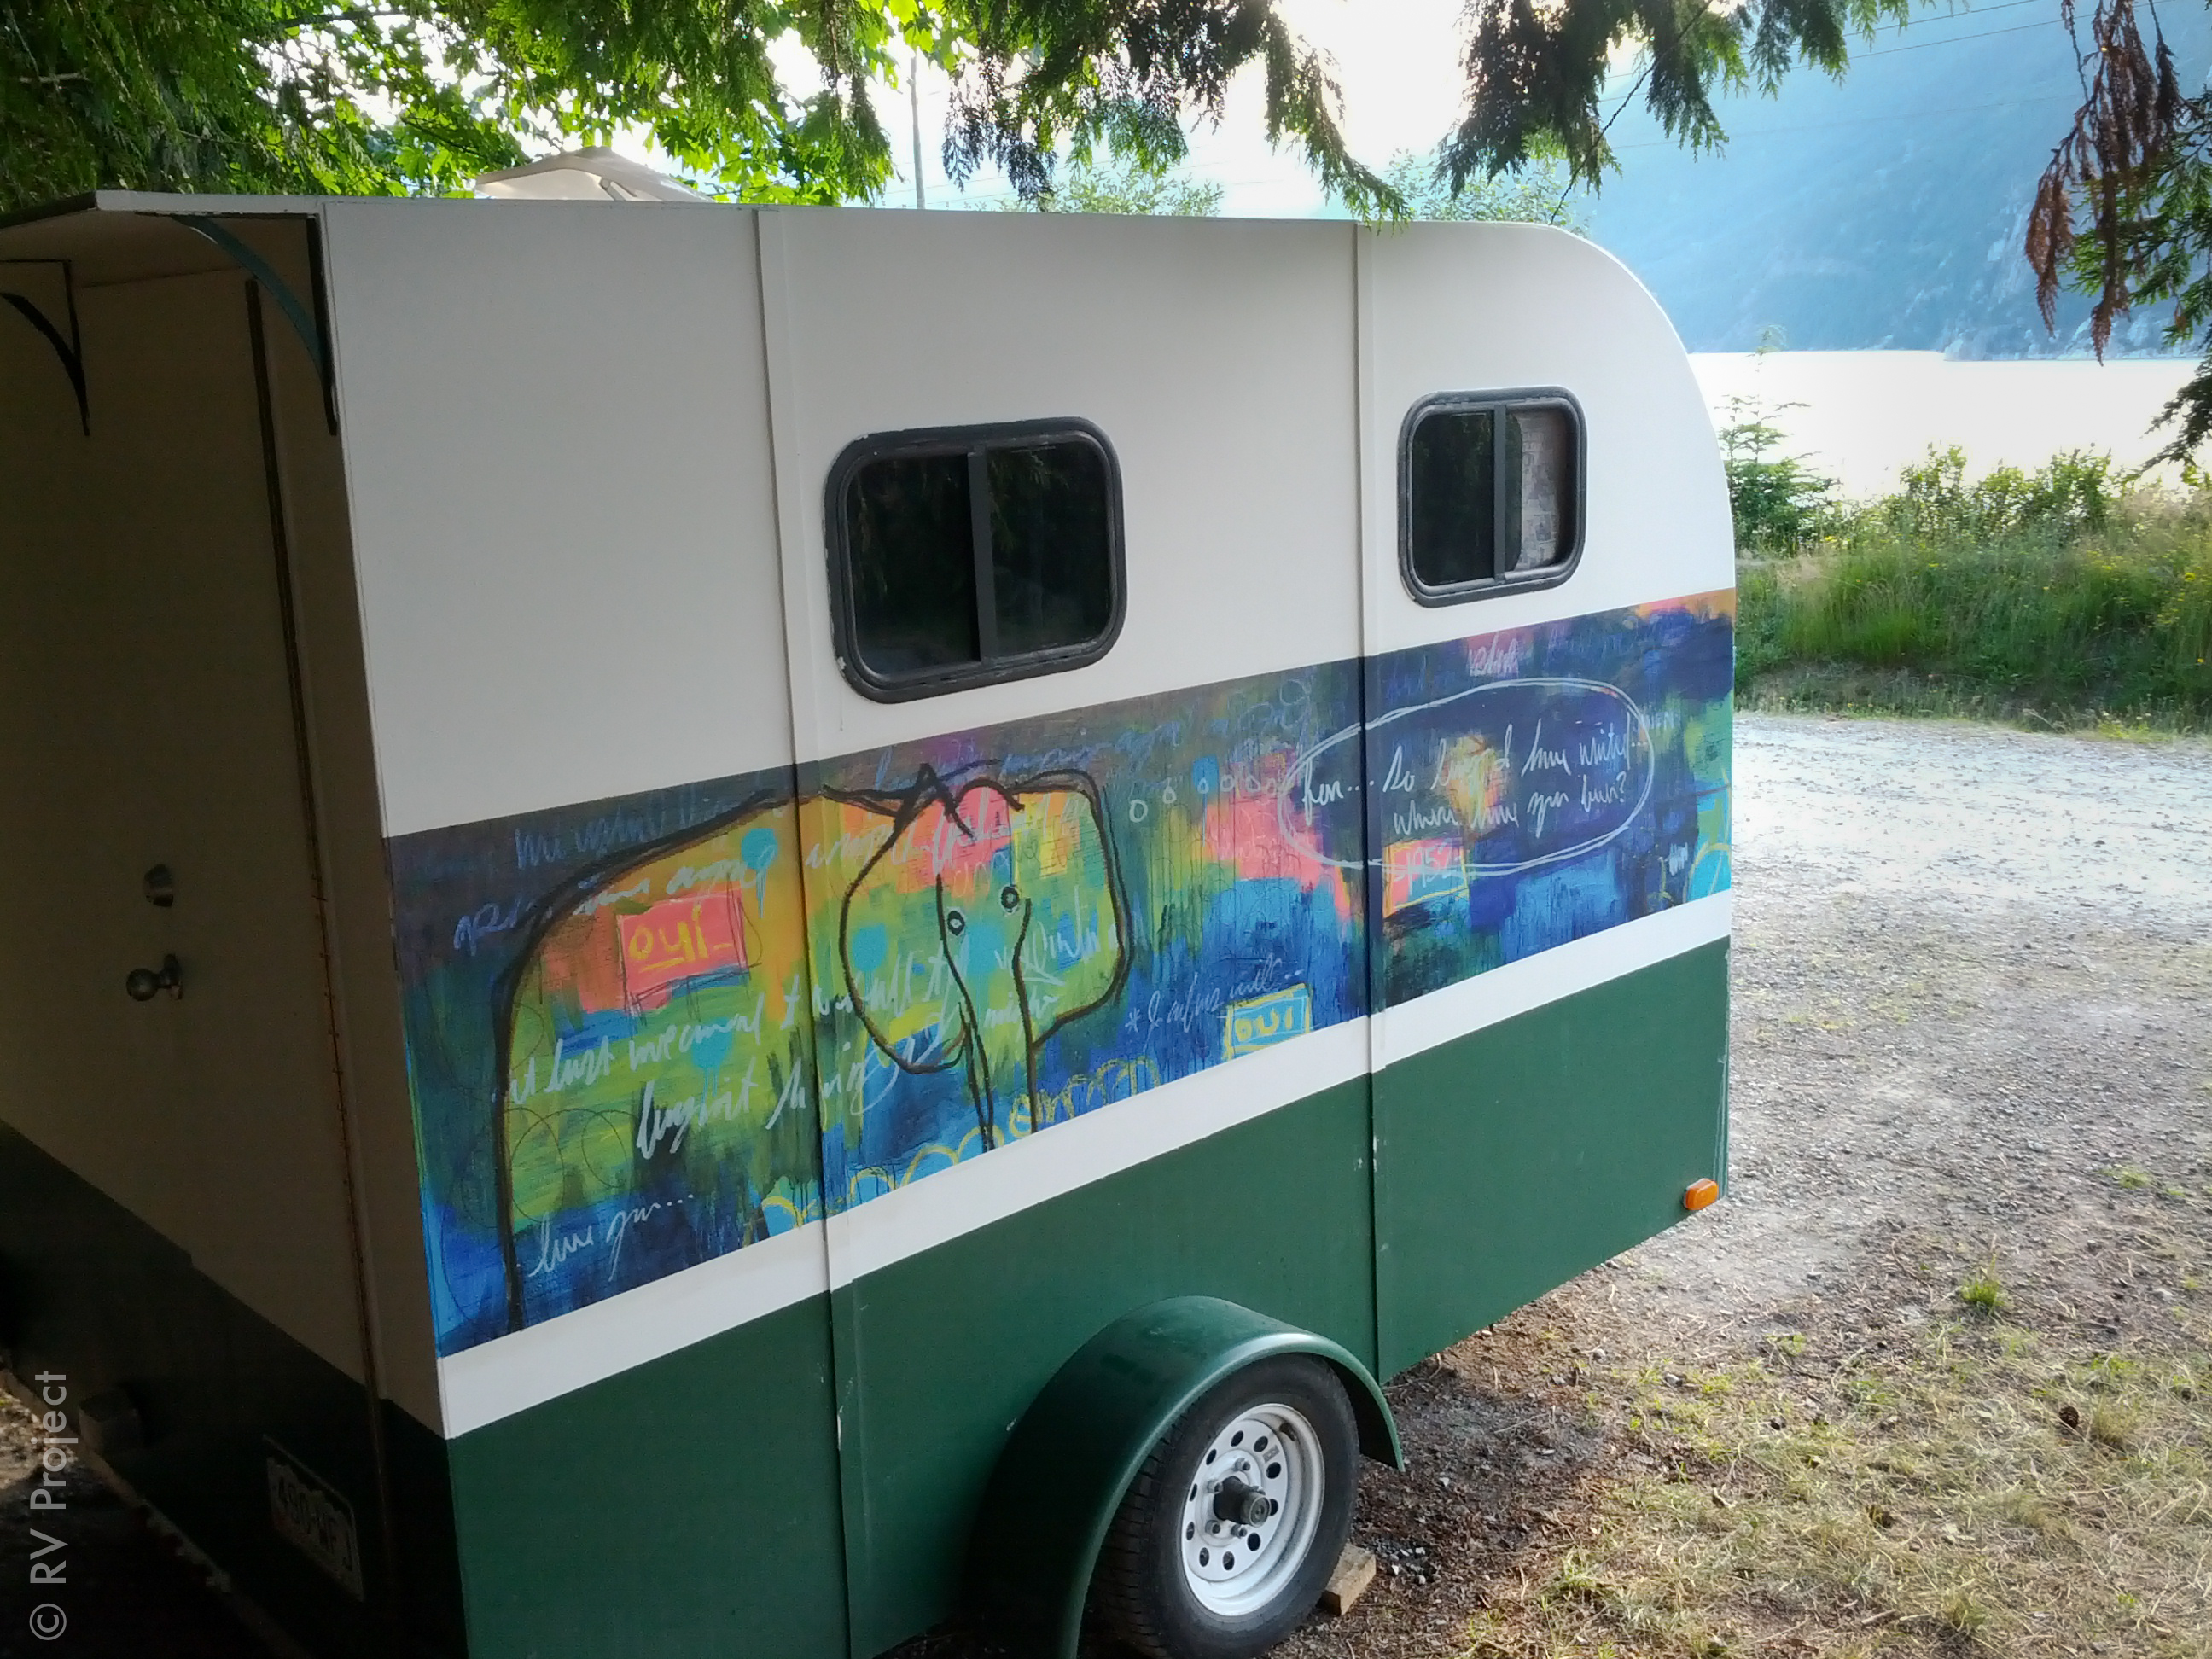 My view while typing. Thanks to Nate Ethington for painting this amazing piece while the trailer was parked in Portland. Please visit nateethington.com for more of his work.